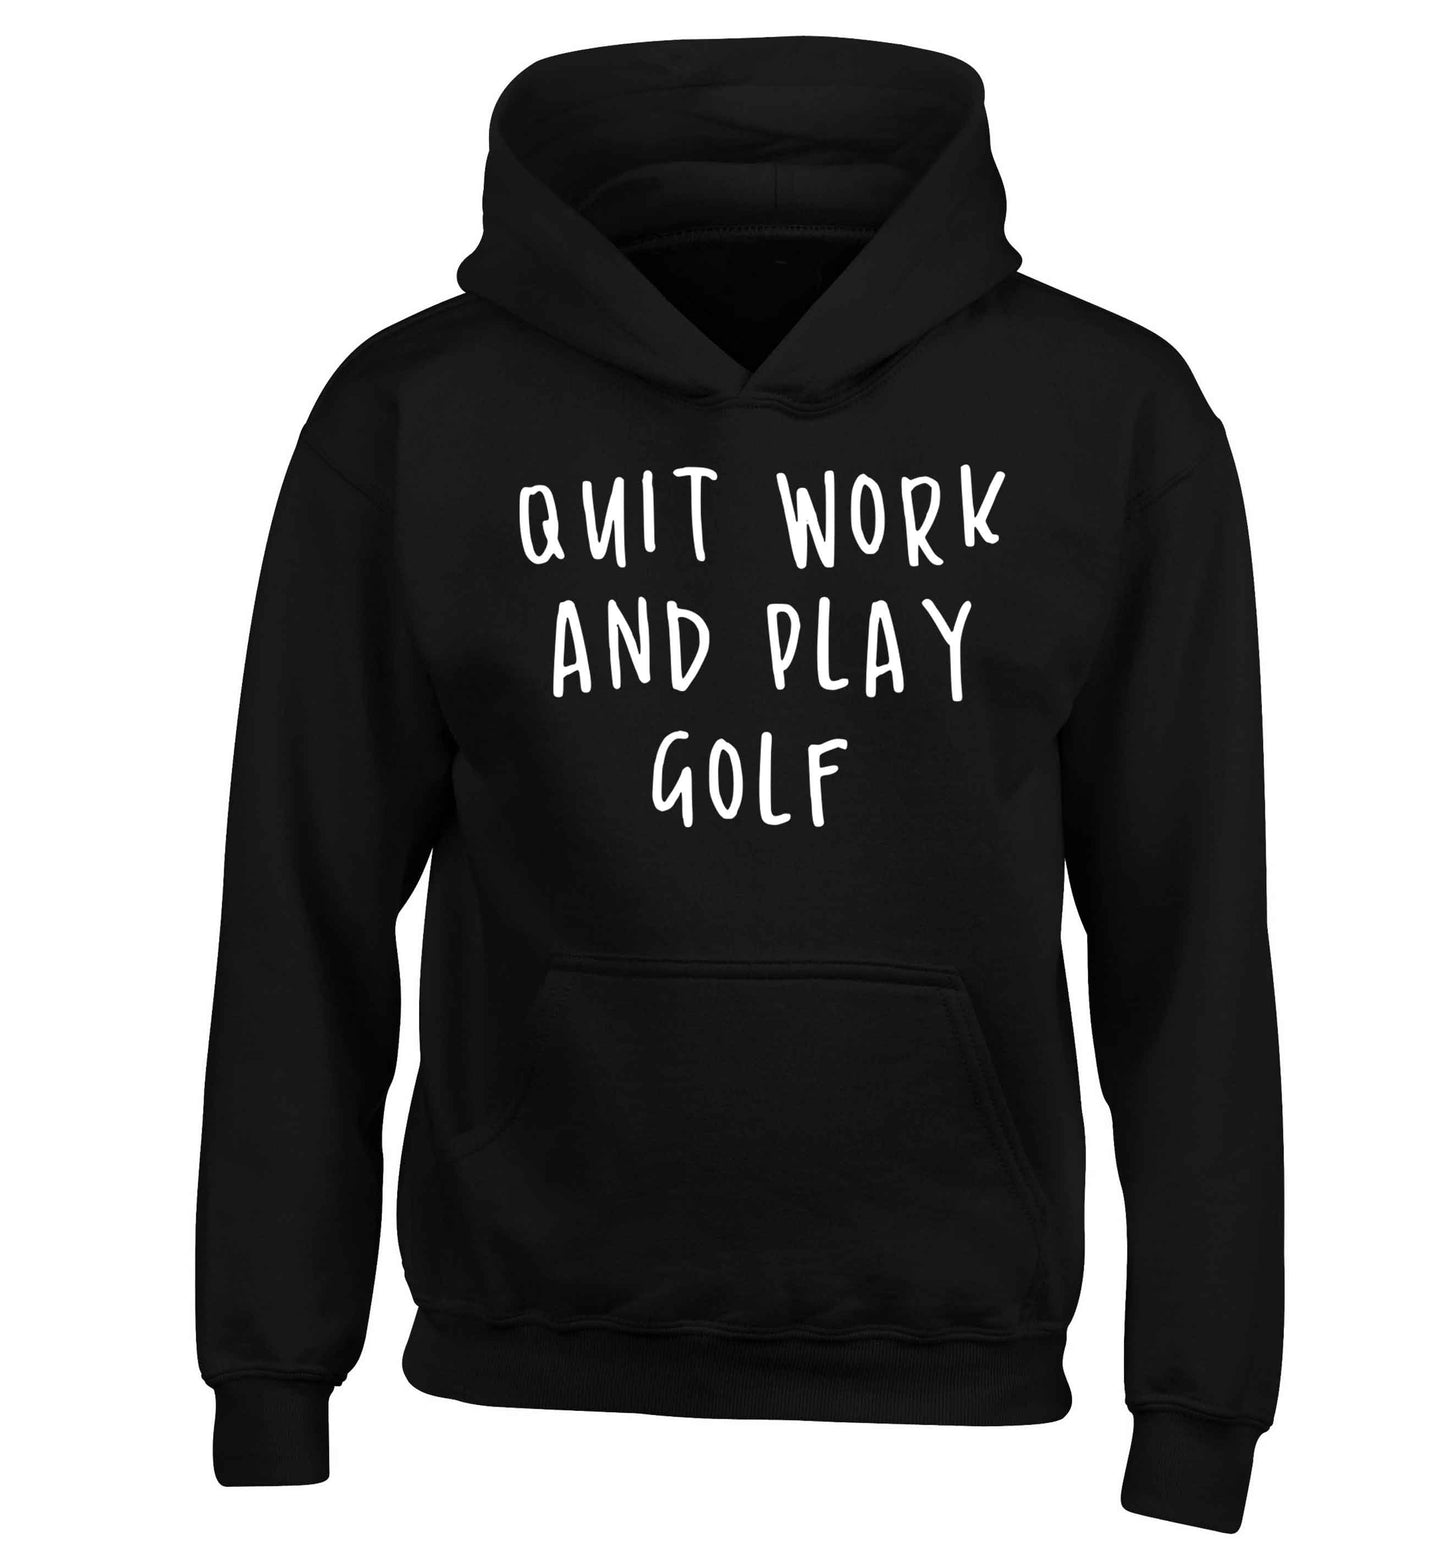 Quit work and play golf children's black hoodie 12-13 Years